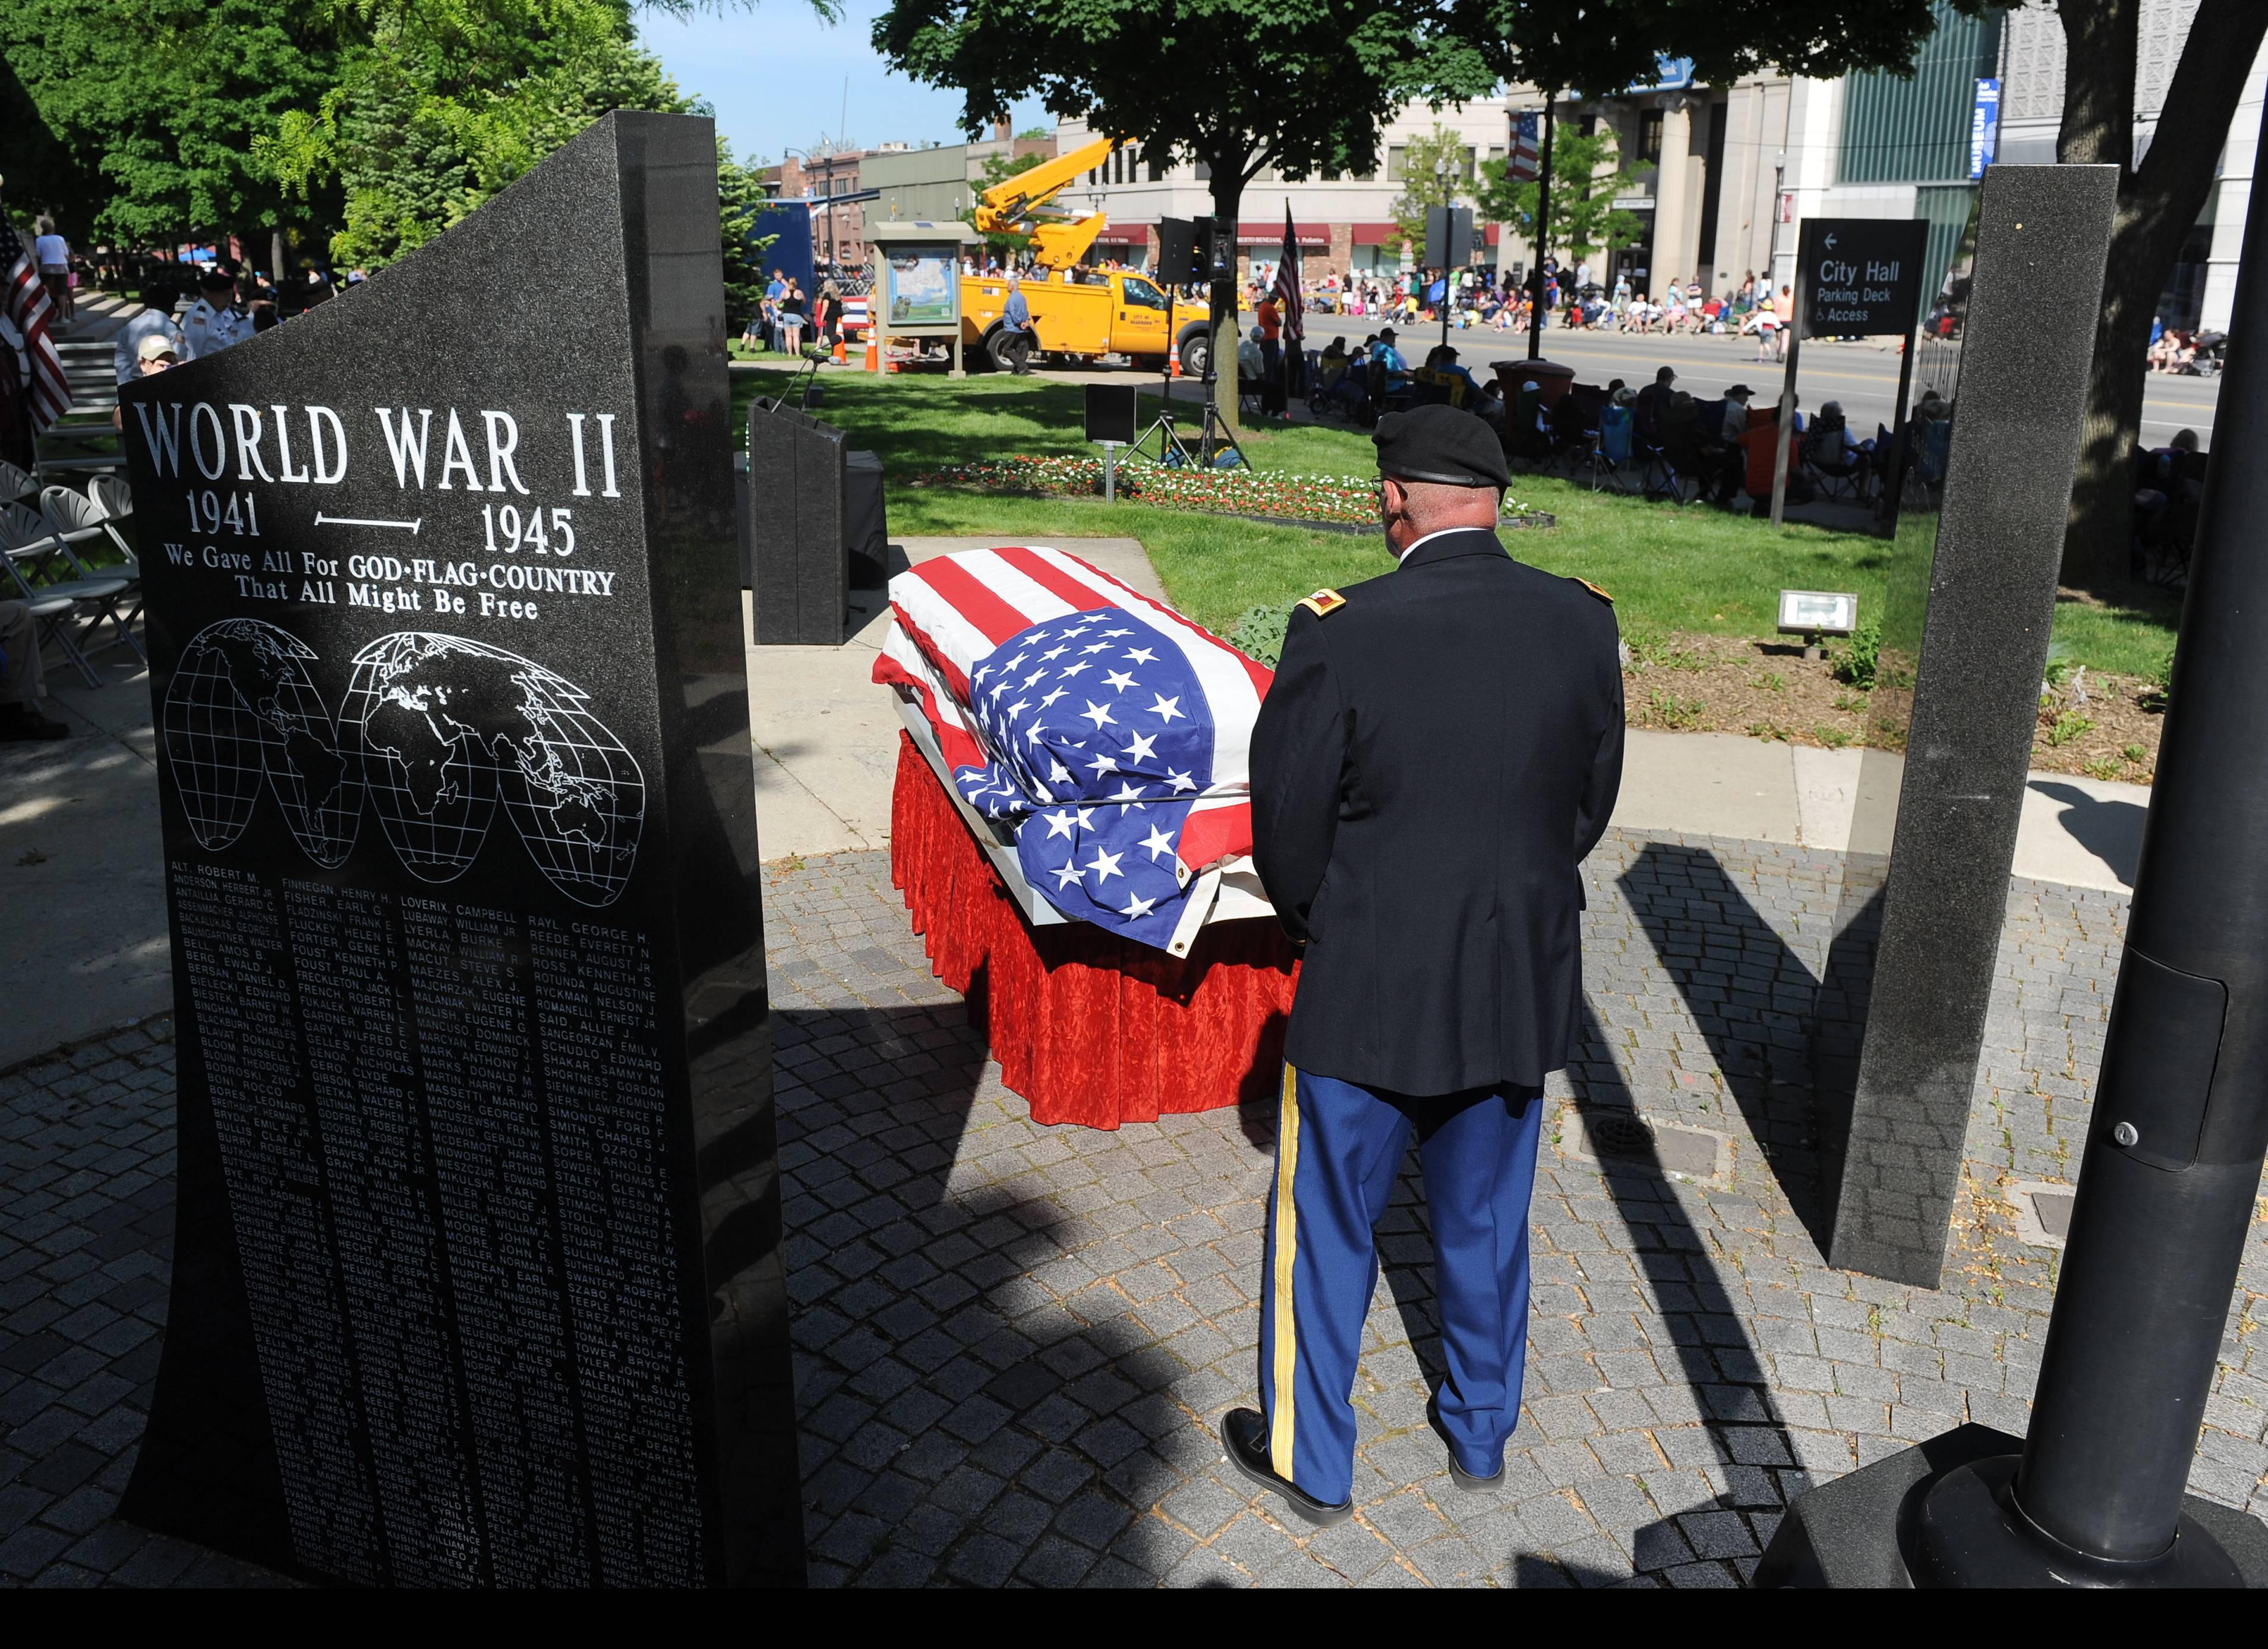 U.S. Army Col. Keith Sousa is honored to stand guard over the remains of five Michigan soldiers, that were given tribute, at the Dearborn Memorial Day Parade in Dearborn, Mich., on Saturday, May 26, 2014.